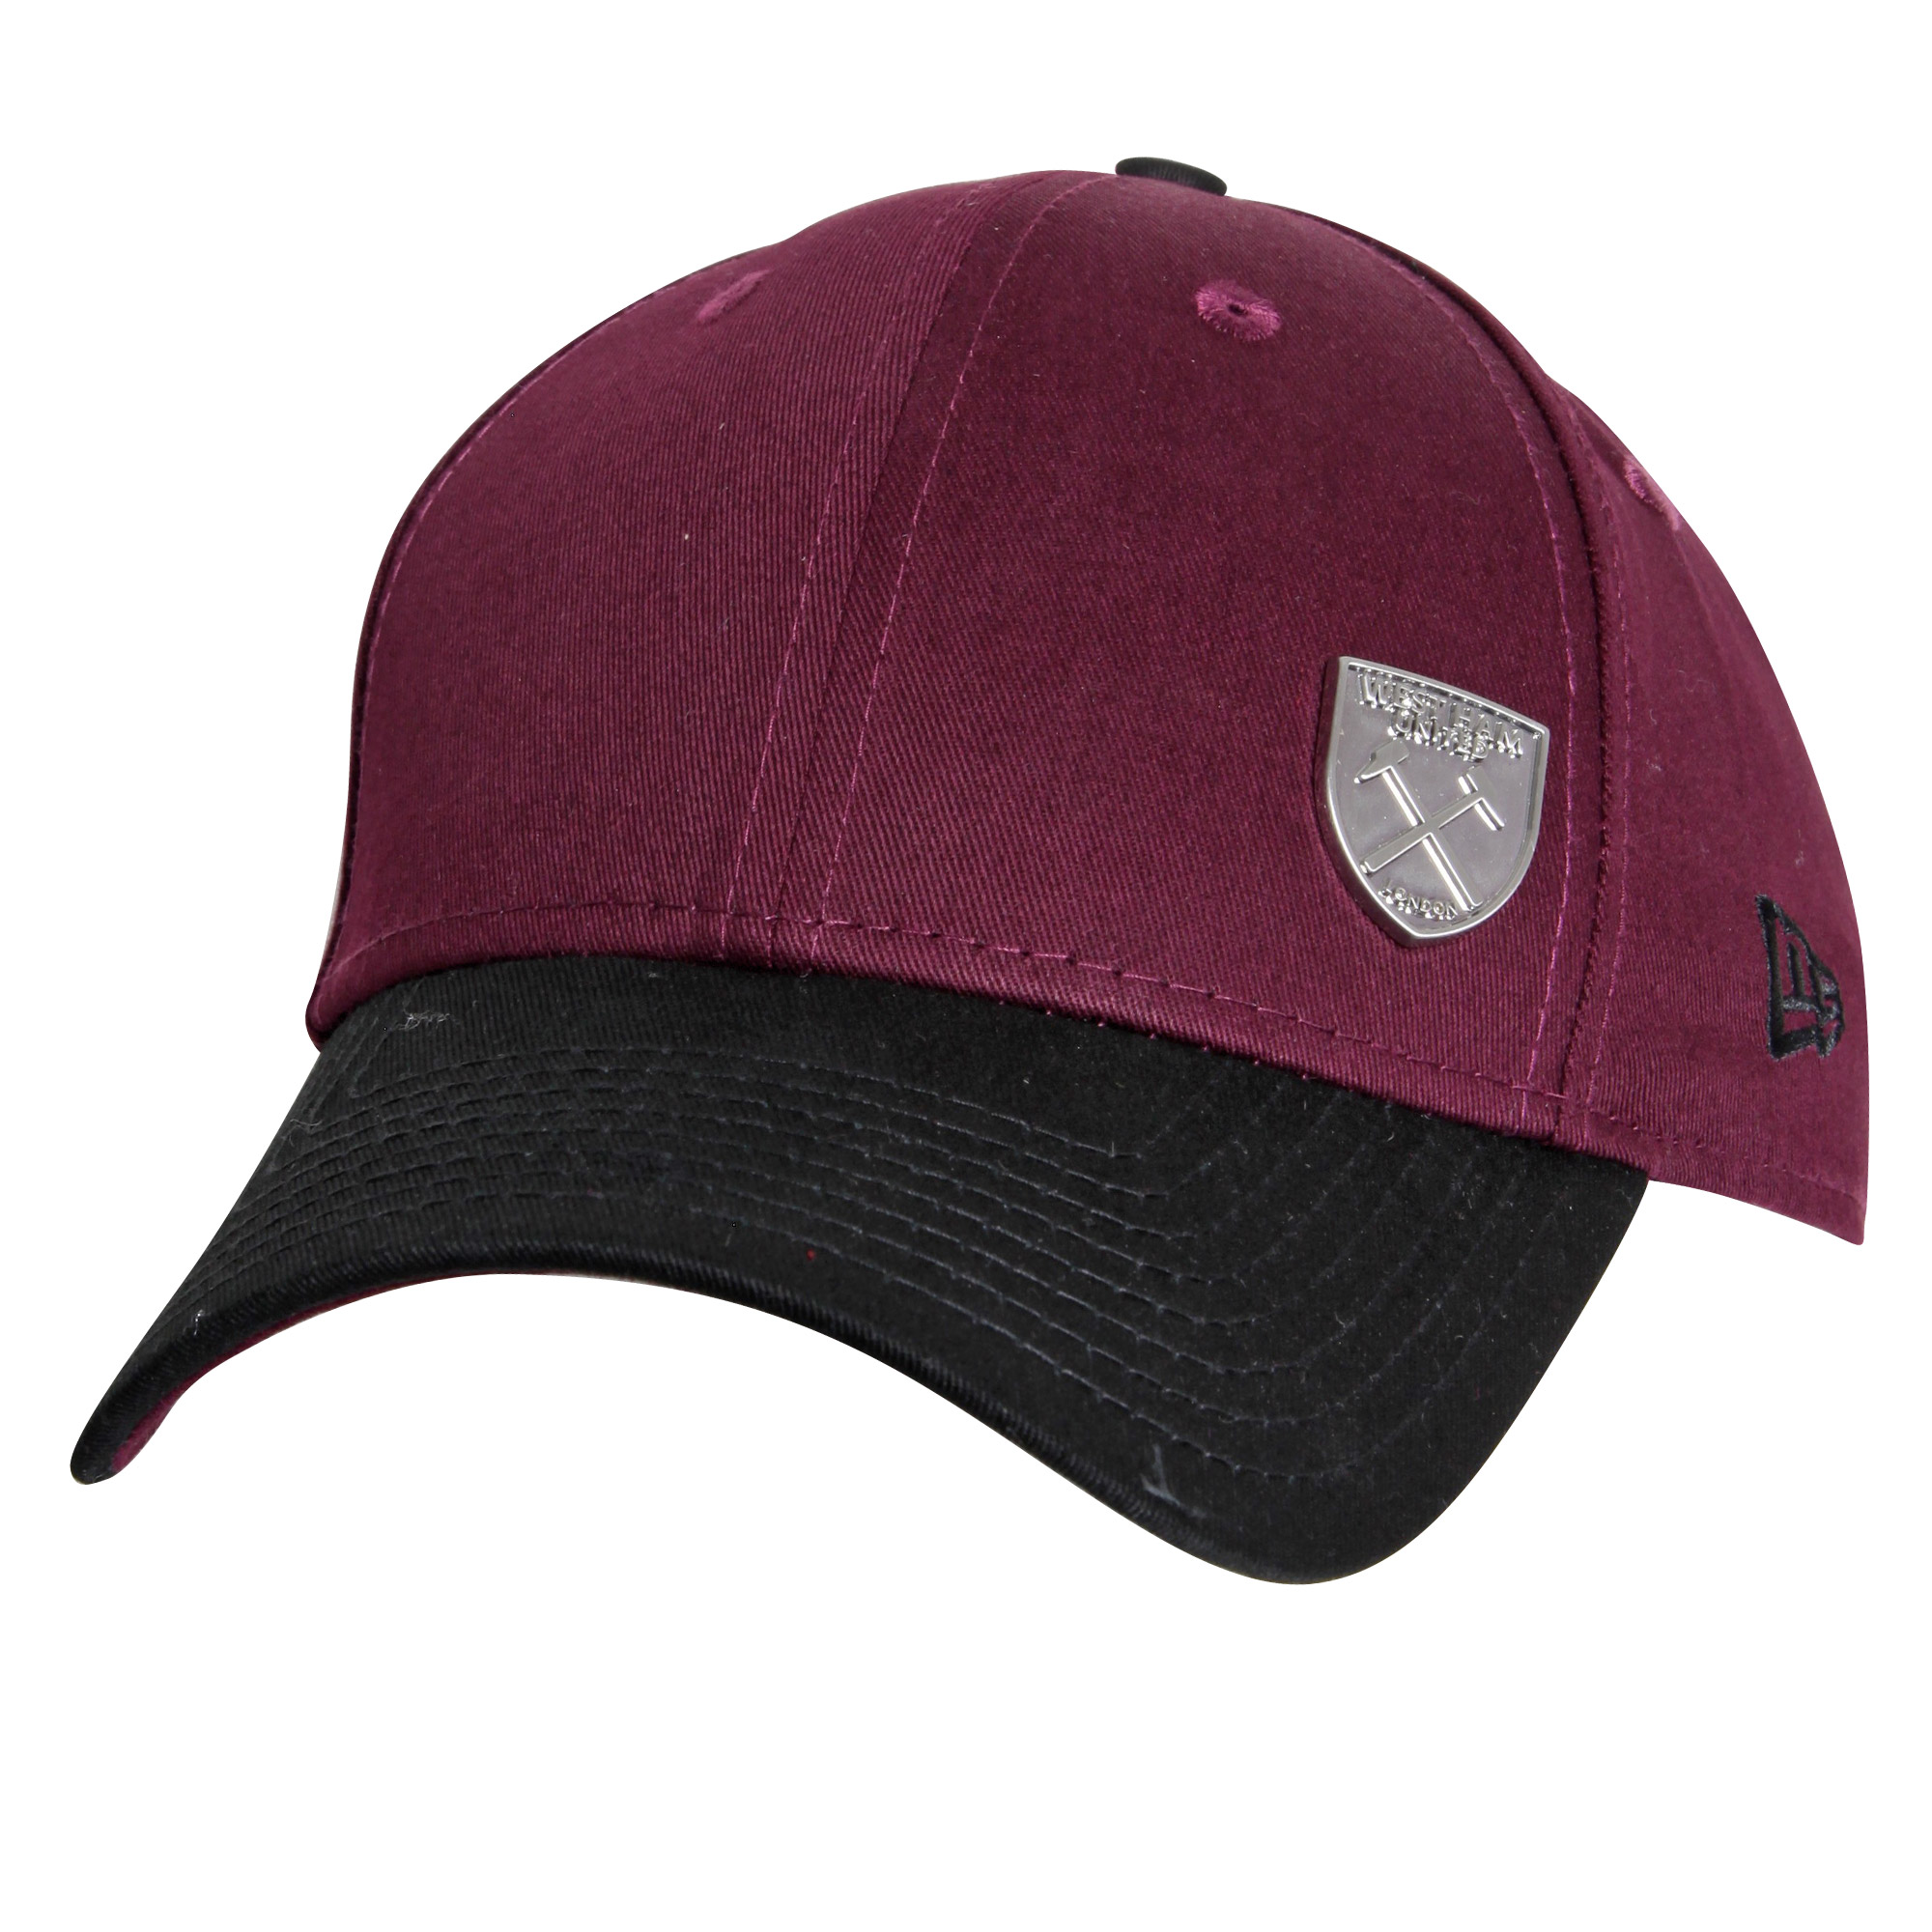 CLARET/BLACK 9FORTY ADJUSTABLE BACK CAP